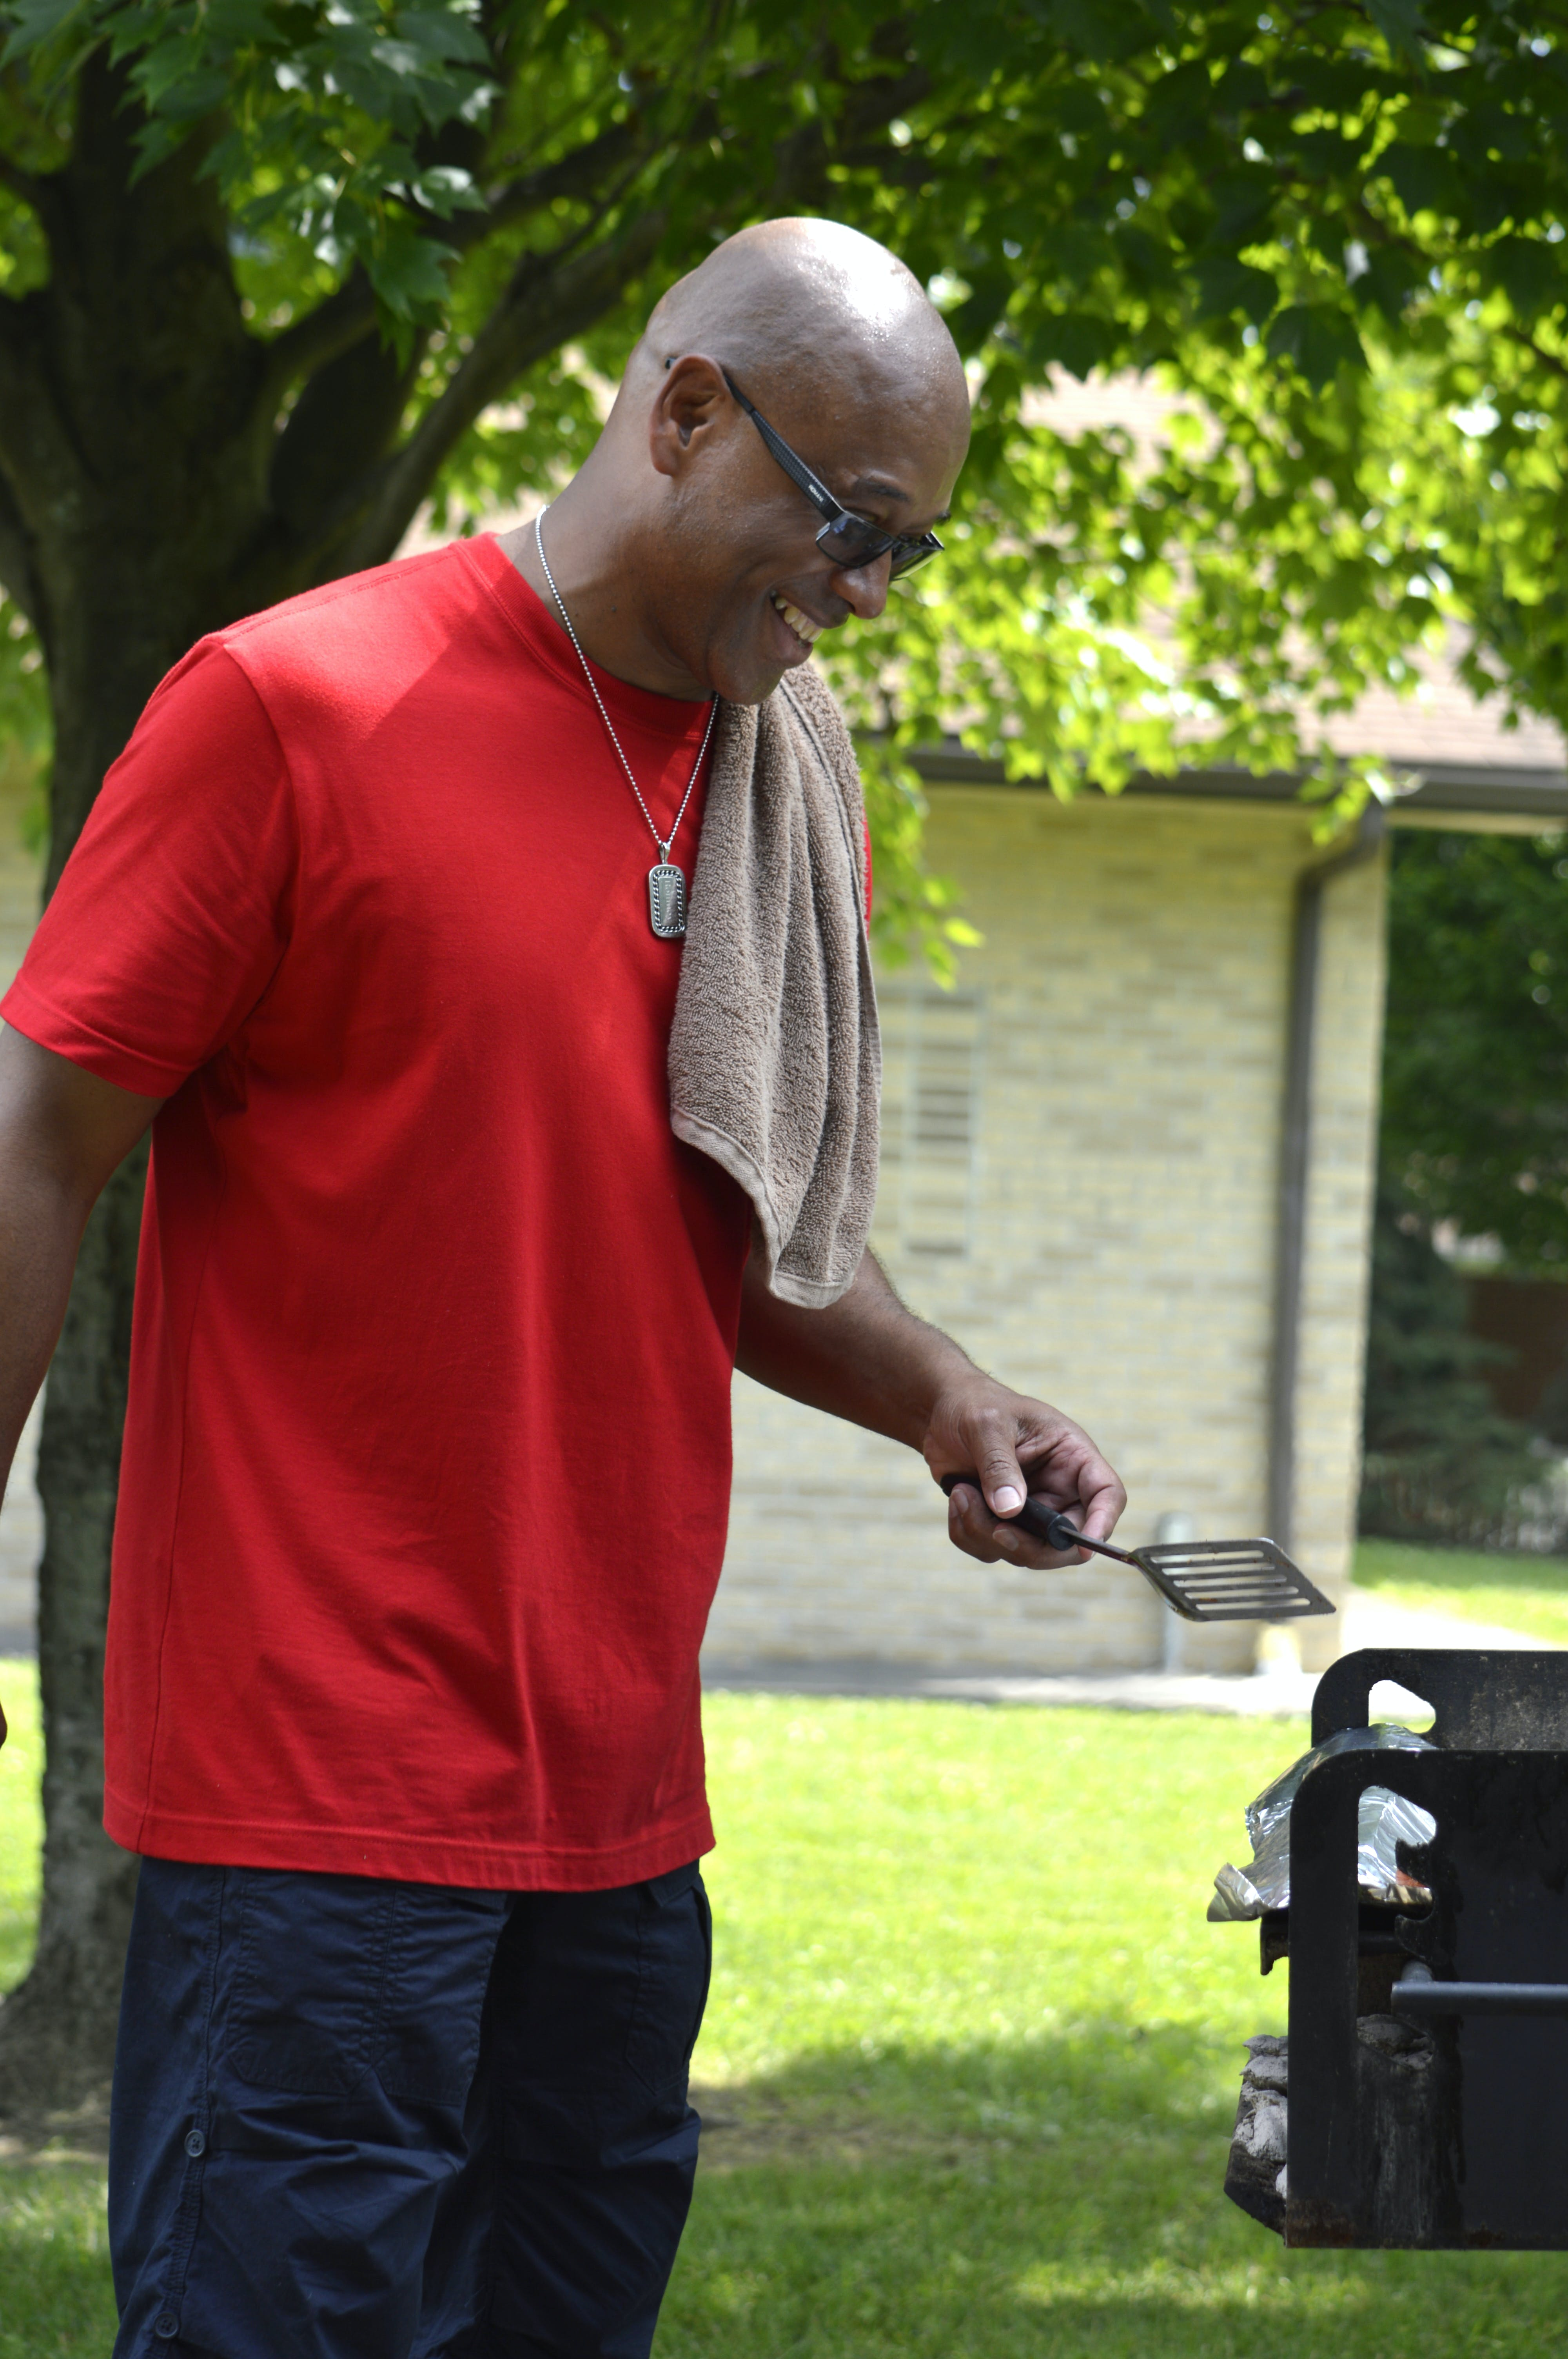 Free stock photo of bald, bbq, cooking, glasses